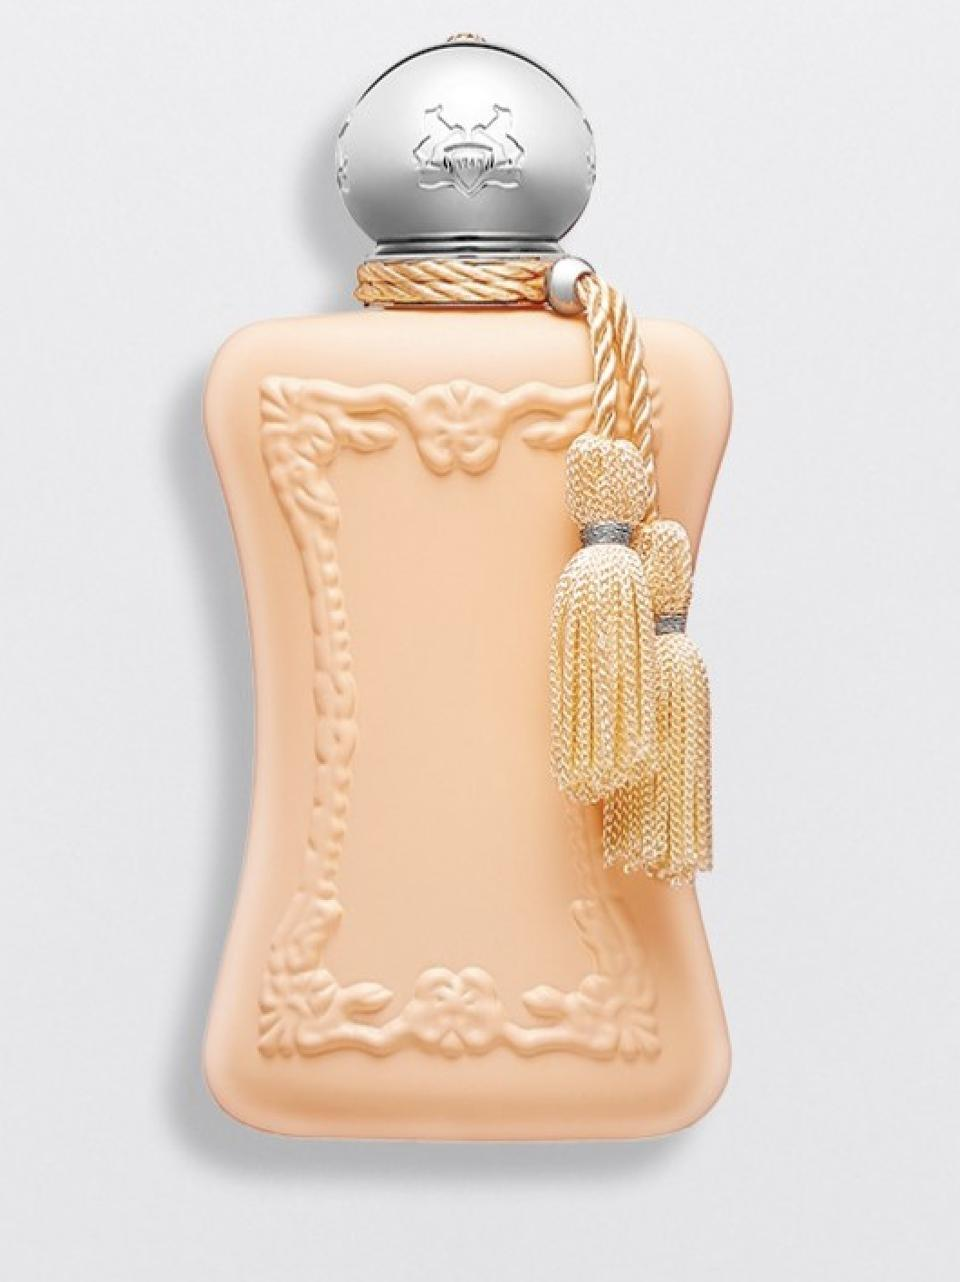 Cassili by Parfums de Marly, a perfect summer fragrance for mom.